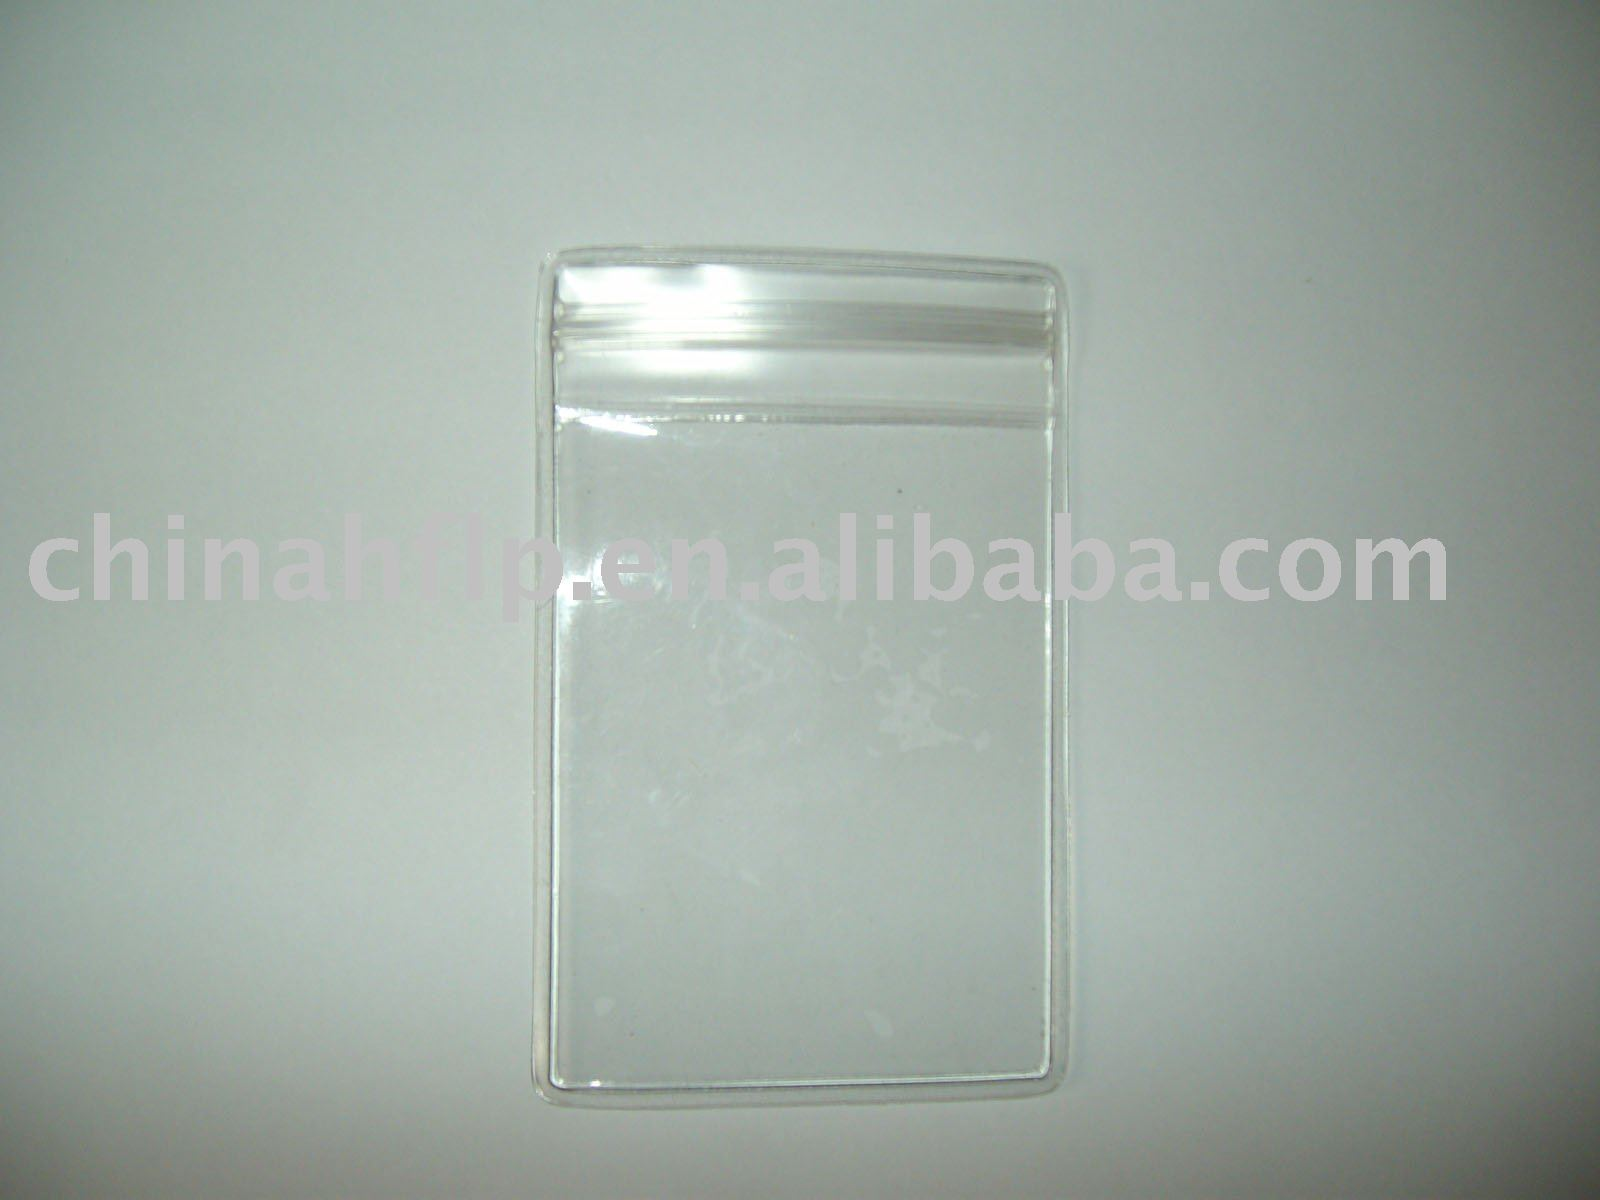 Clear Soft Plastic Id Card Holders With Zip Lock Can